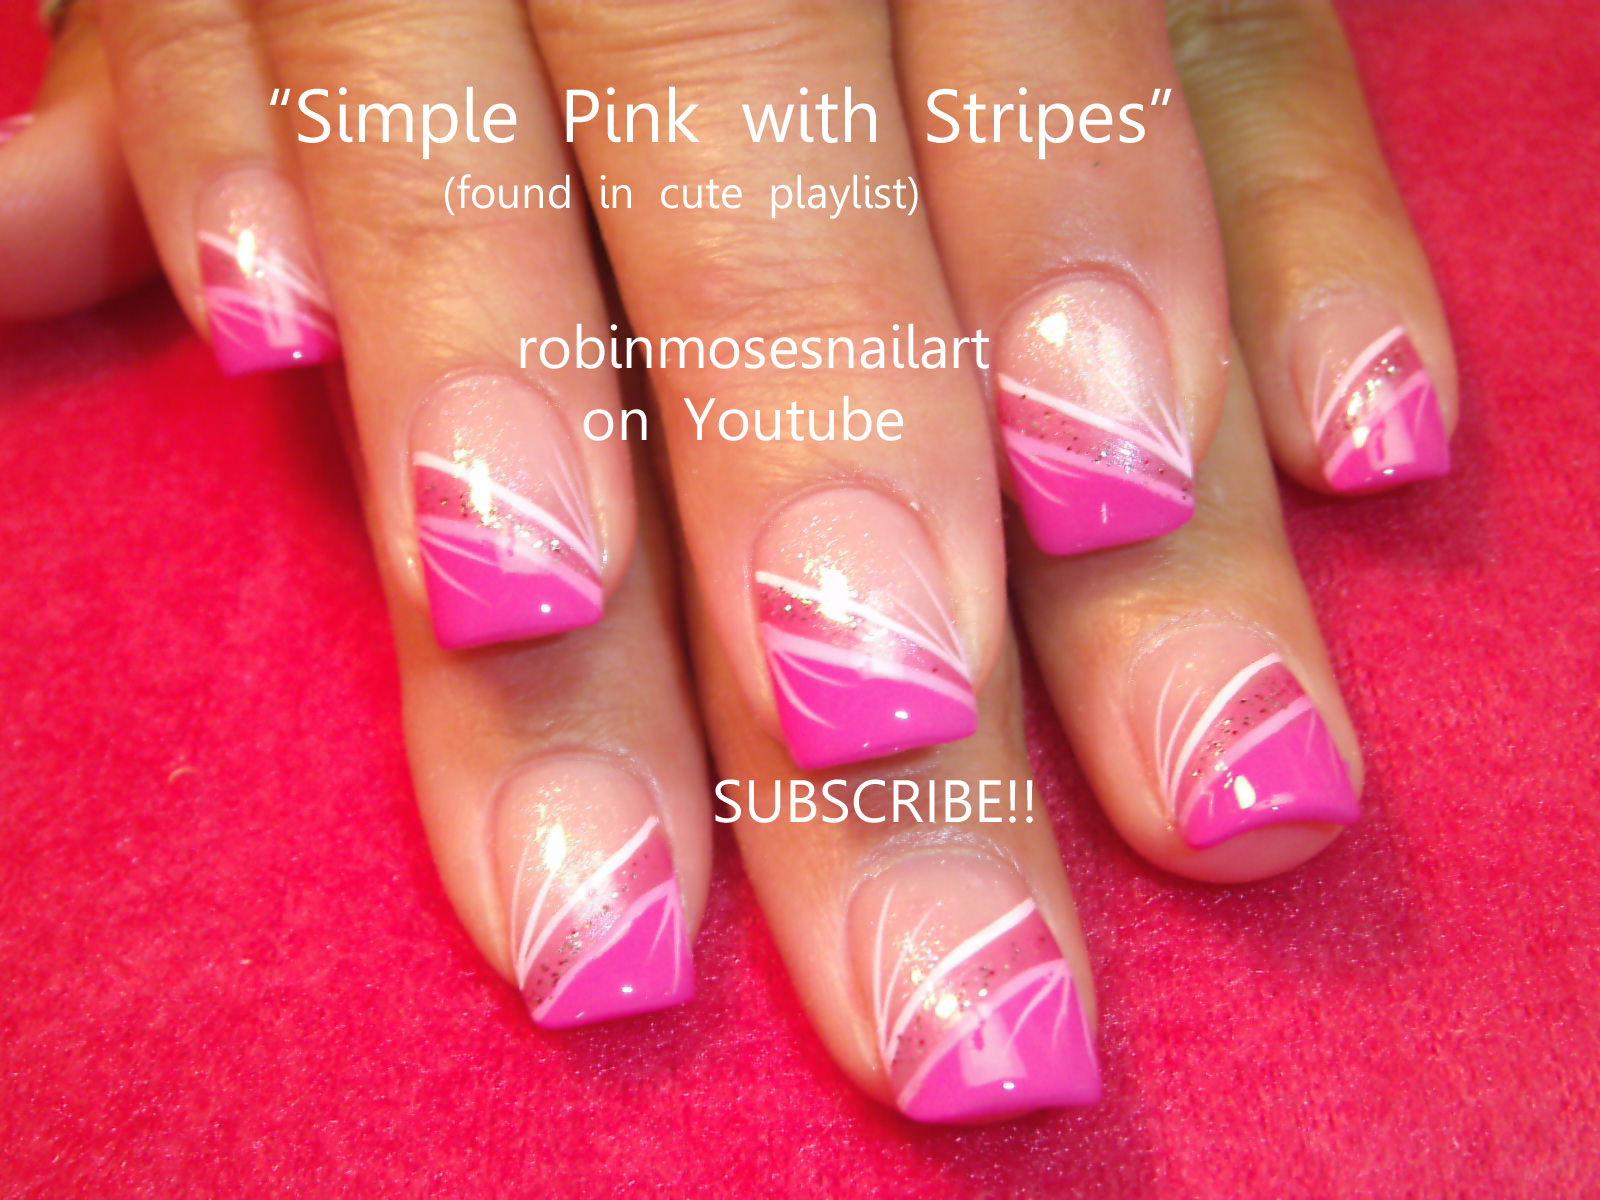 Simple nail designs pink simple pink white bow style nail art view images robin moses nail art cutest easy pink prinsesfo Choice Image